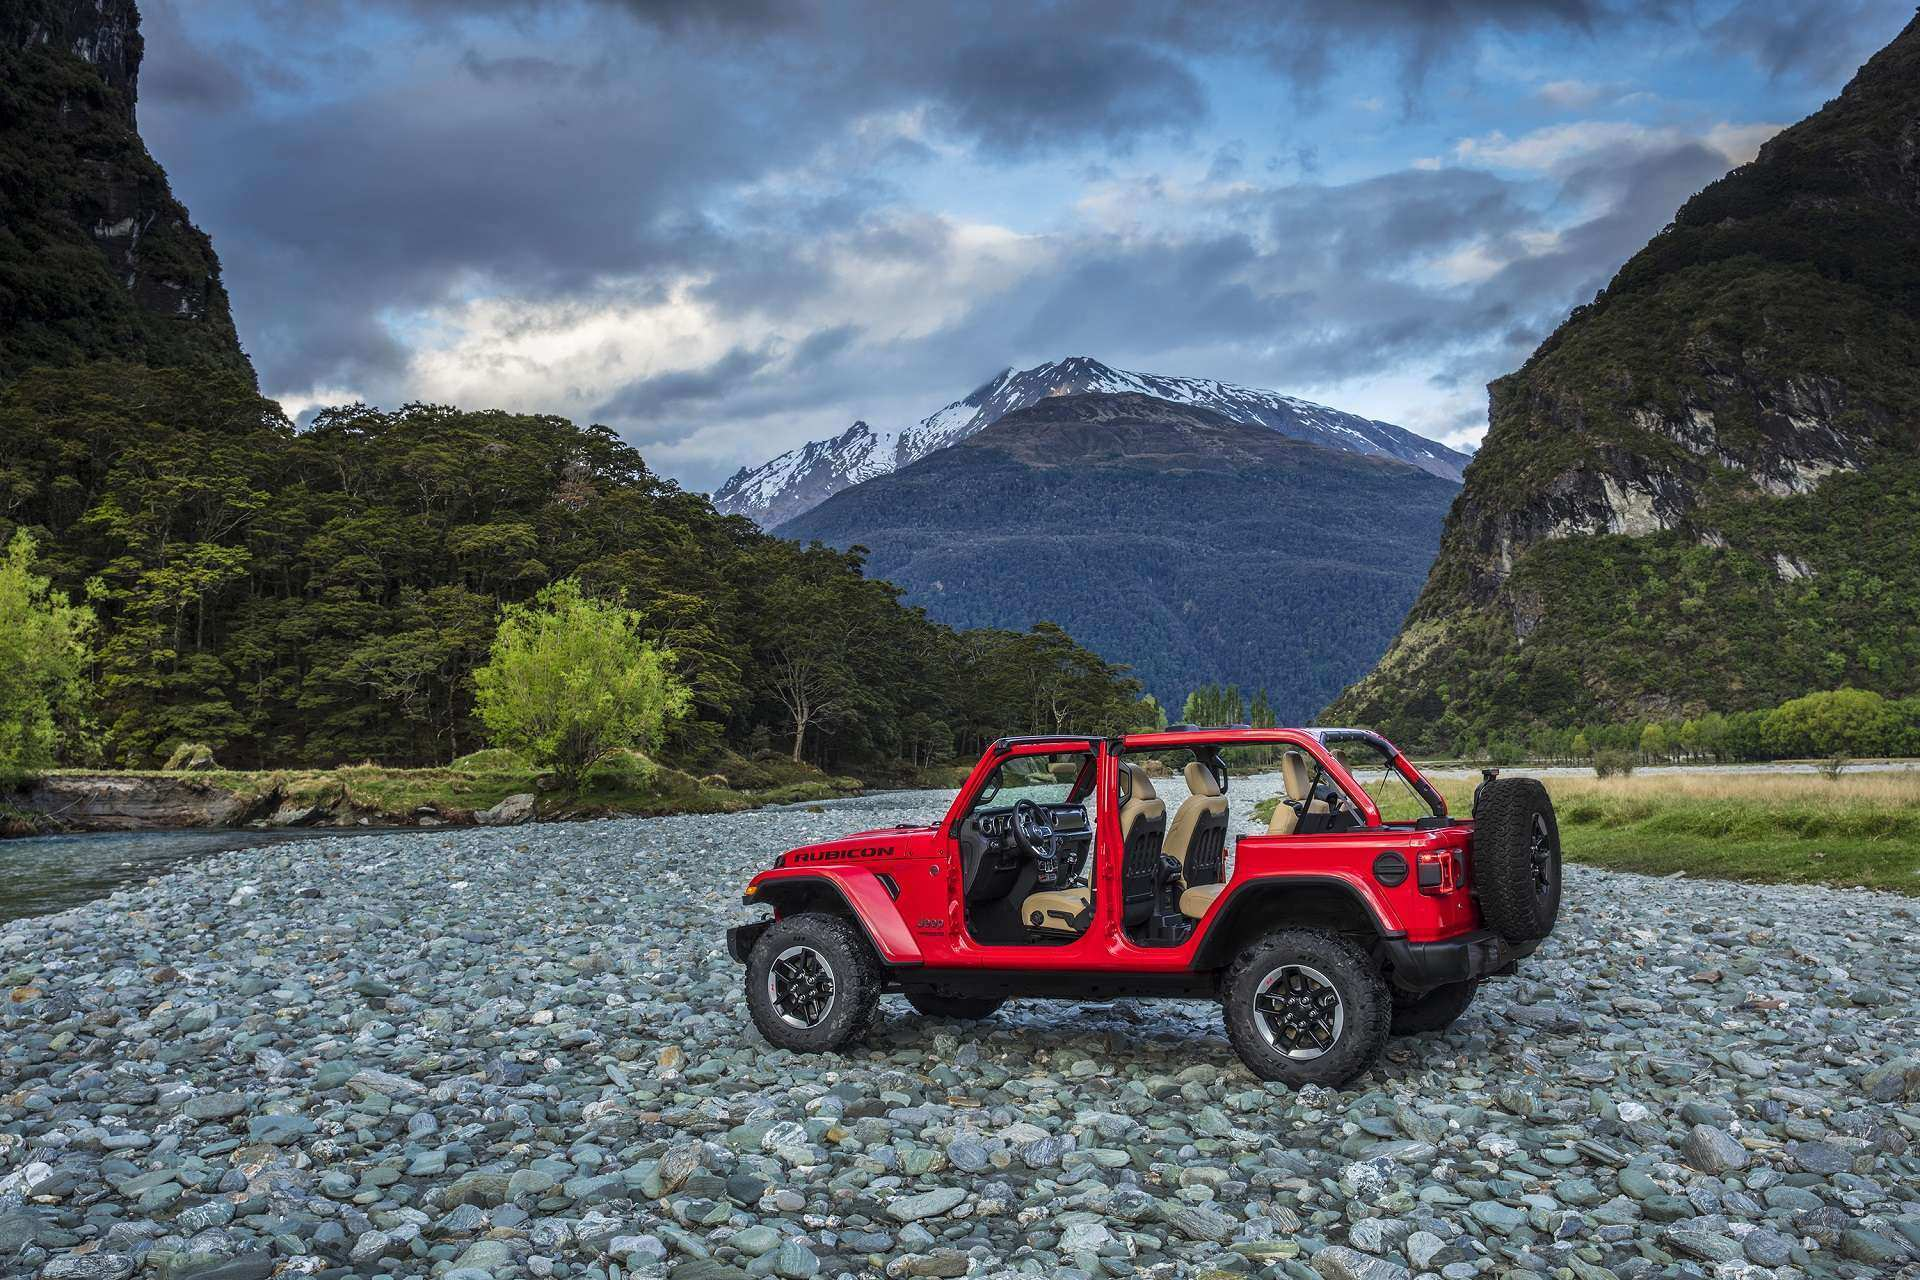 83 All New 2019 Jeep Pickup Diesel Photos for 2019 Jeep Pickup Diesel